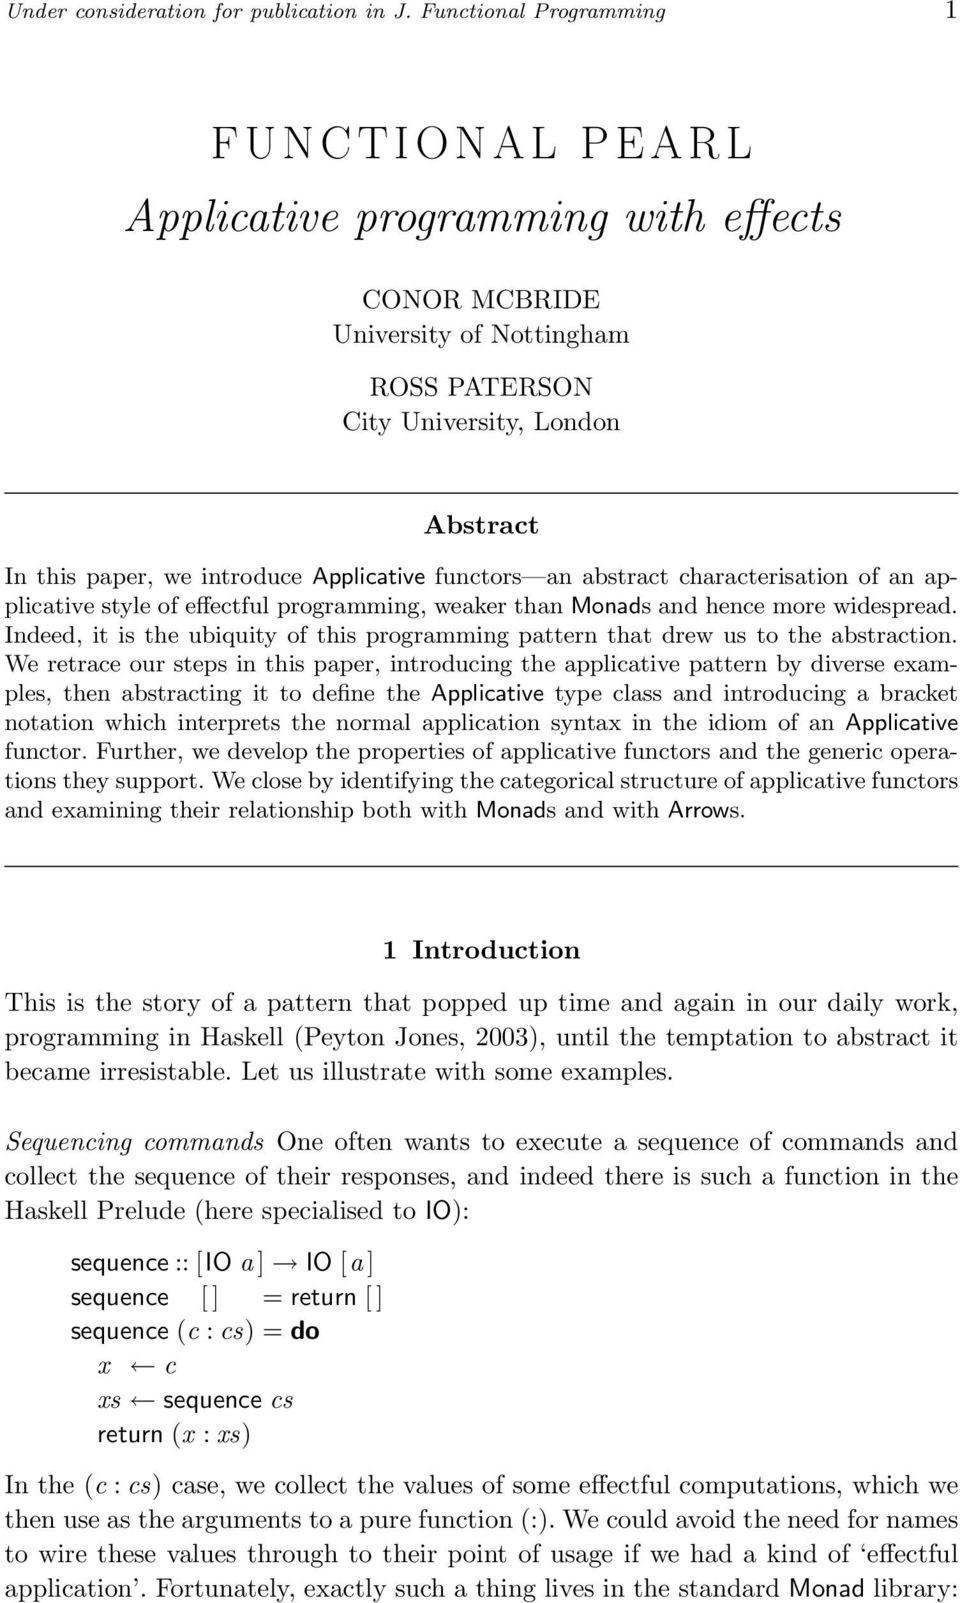 introduce Applicative functors an abstract characterisation of an applicative style of effectful programming, weaker than Monads and hence more widespread.